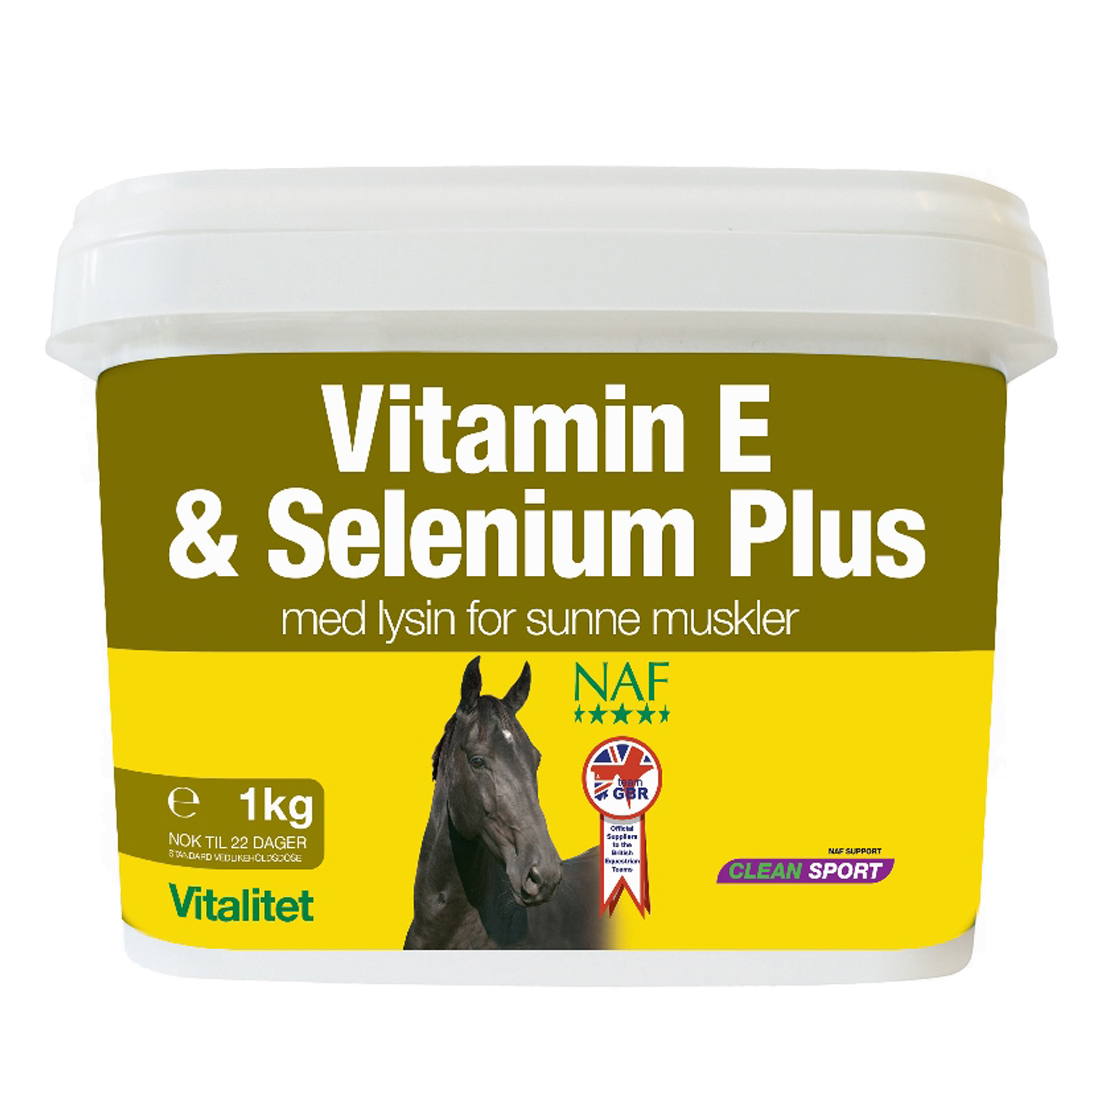 NAF Vitamin E & Selenium plus